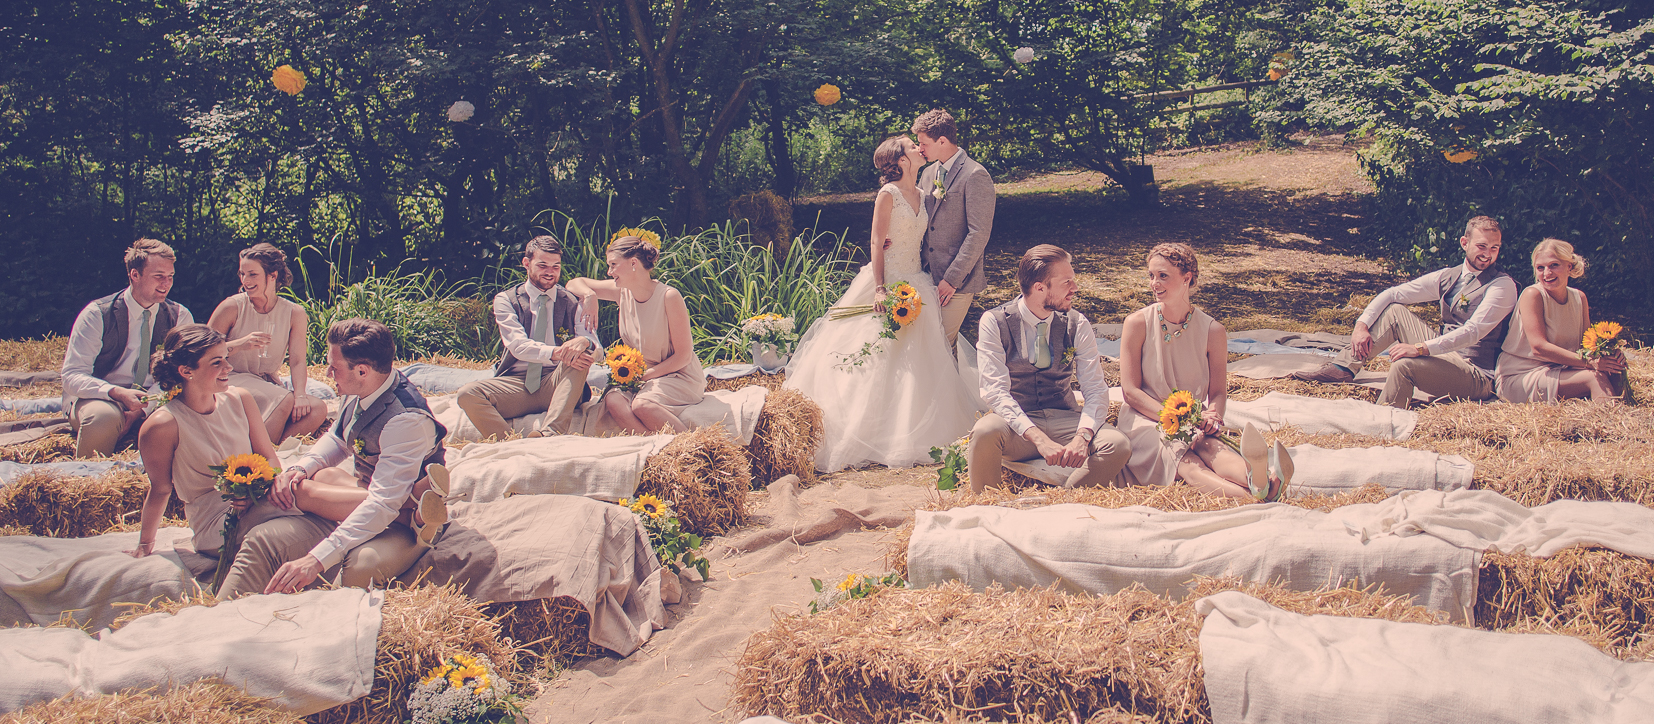 Picture on haybales wedding party